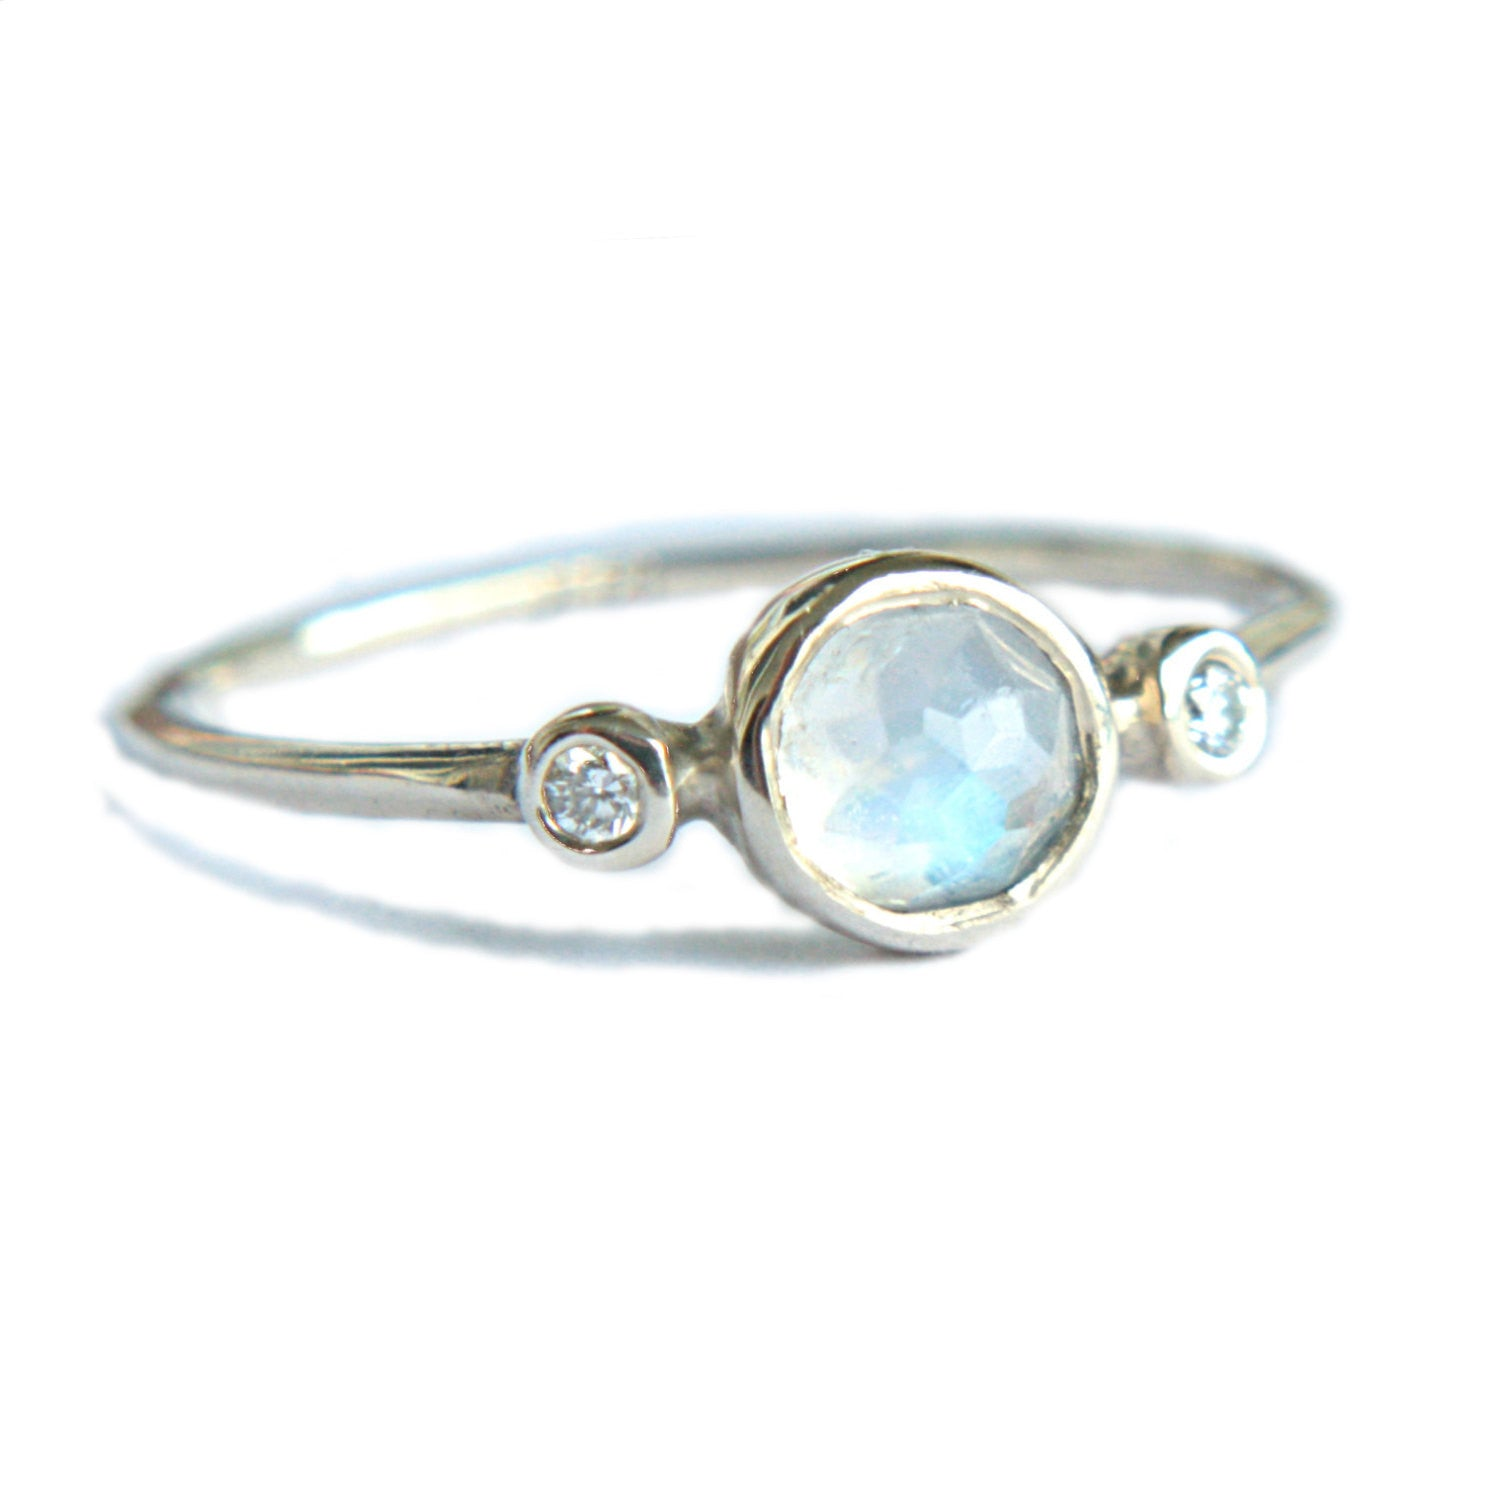 Rose Cut Moonstone and Diamond Ring 14k Gold - Manari.eu